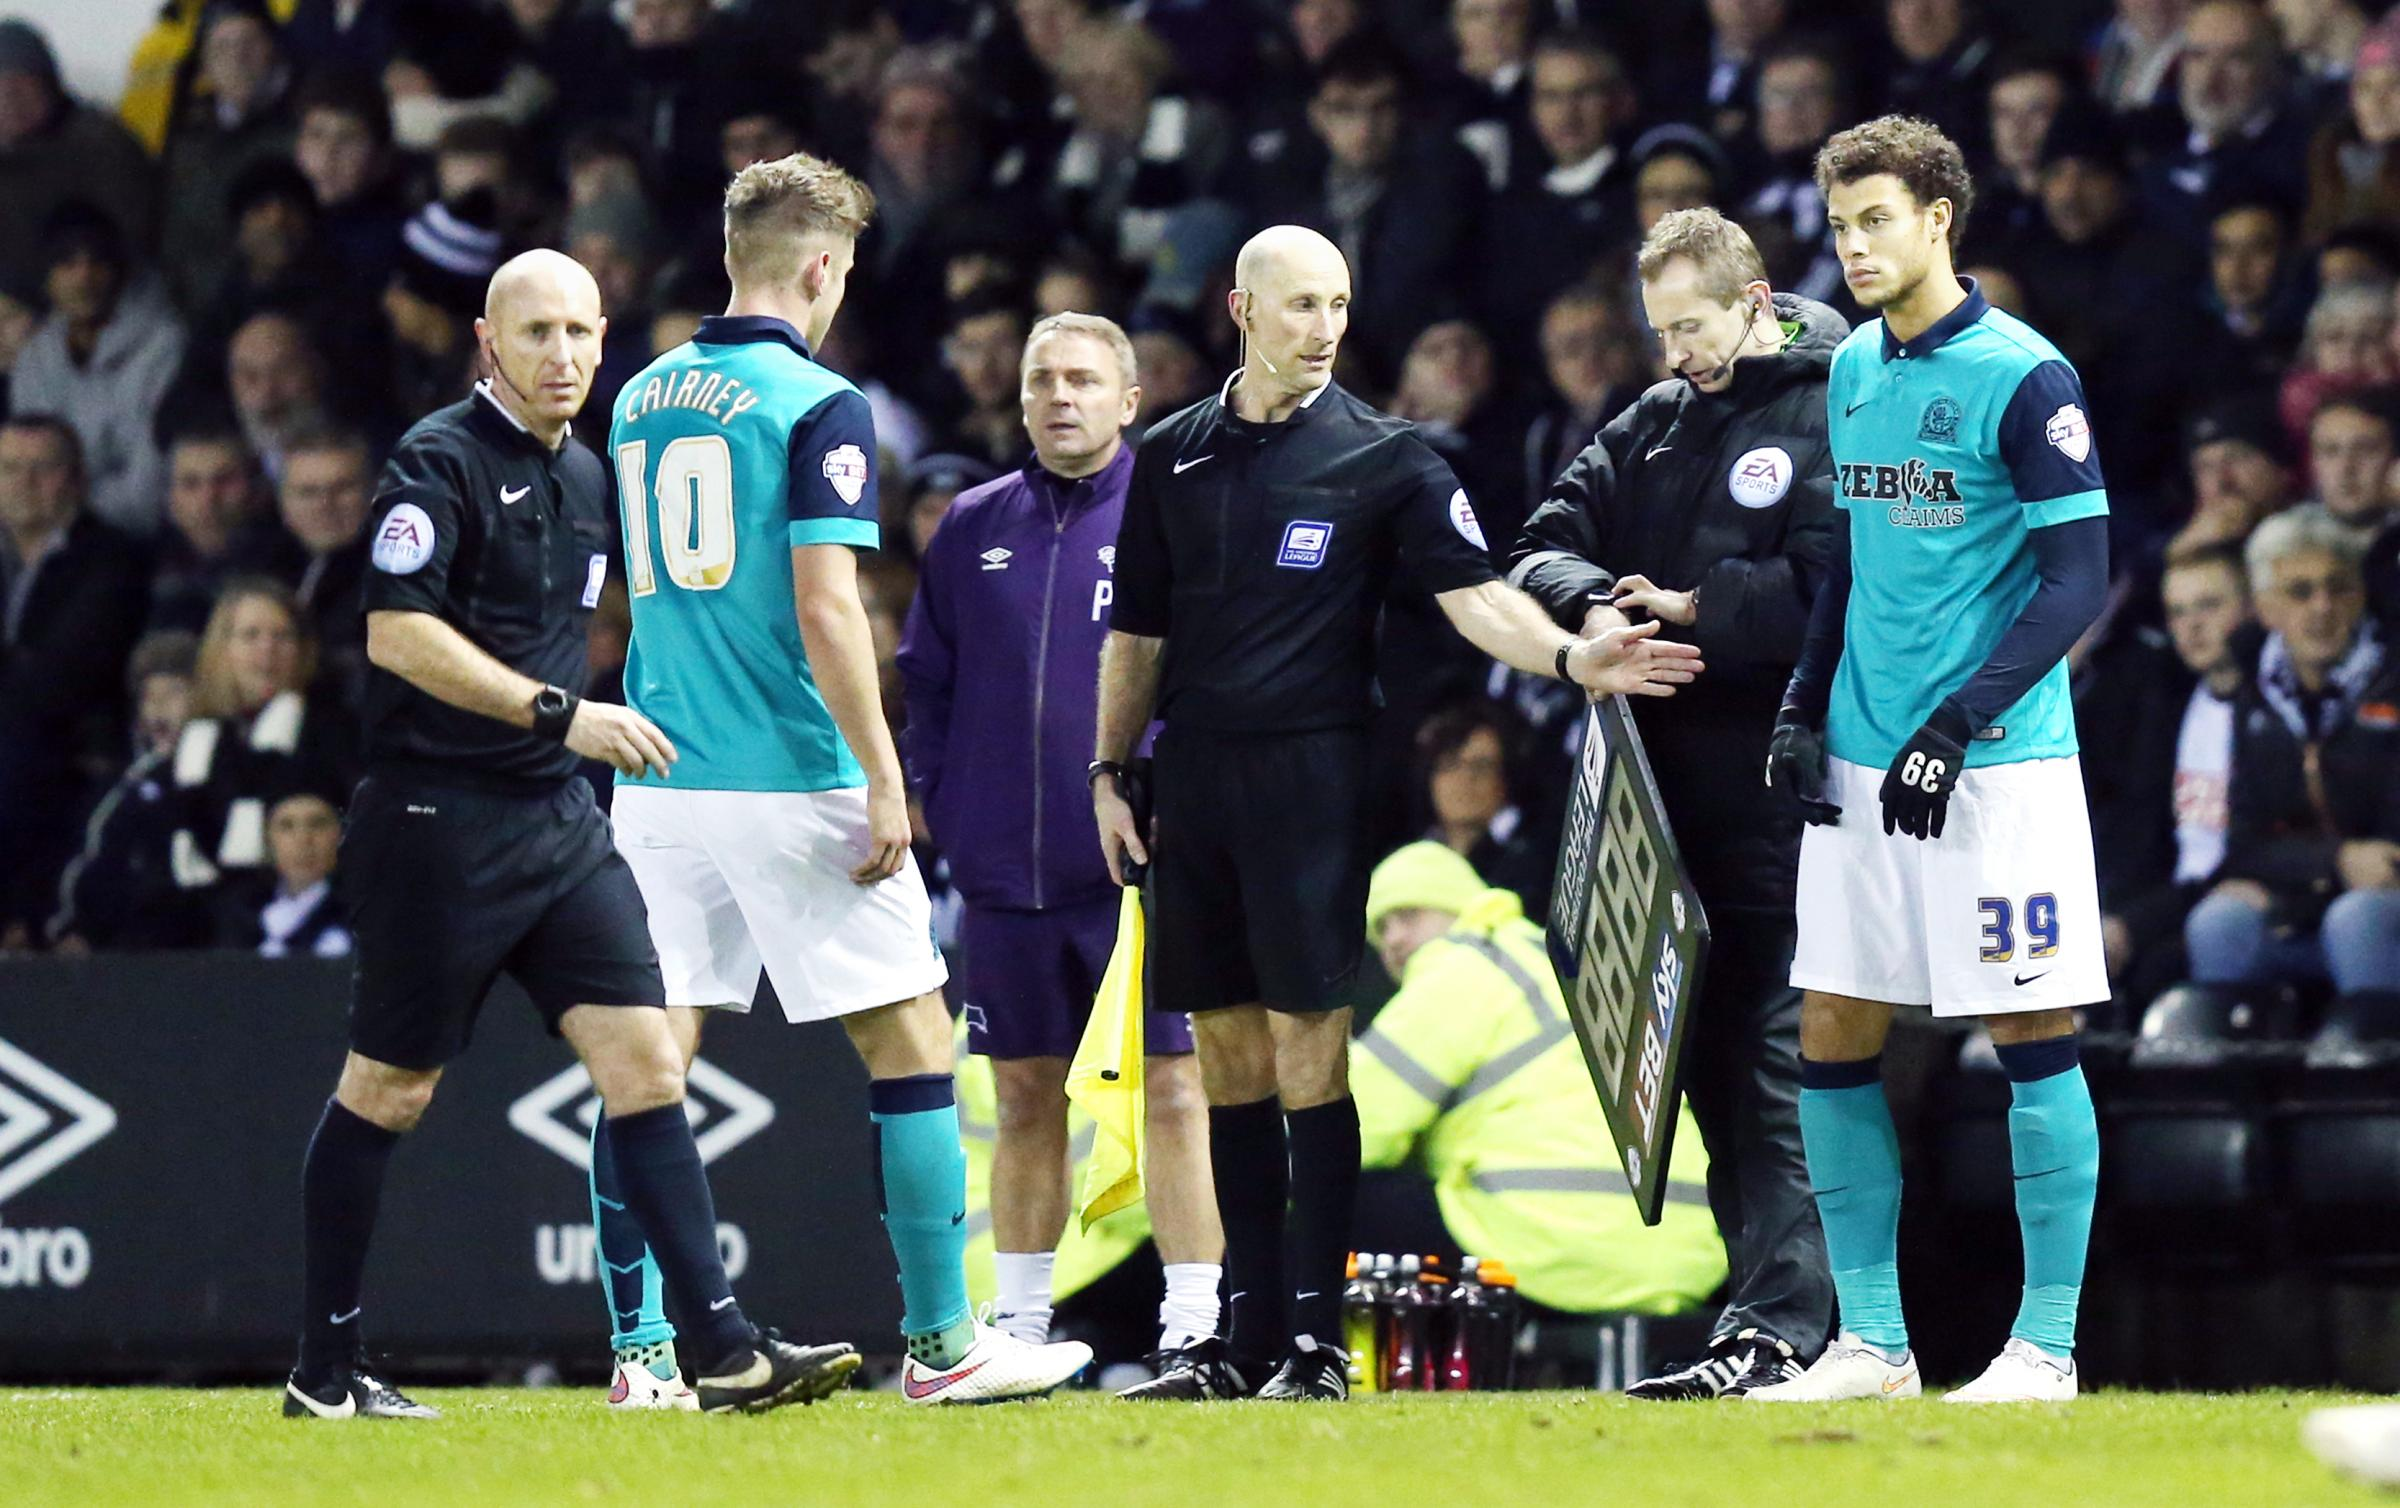 Rudy Gestede came on as a substitute for the injured Tom Cairney in Tuesday's loss at Derby County but later went off injured himself